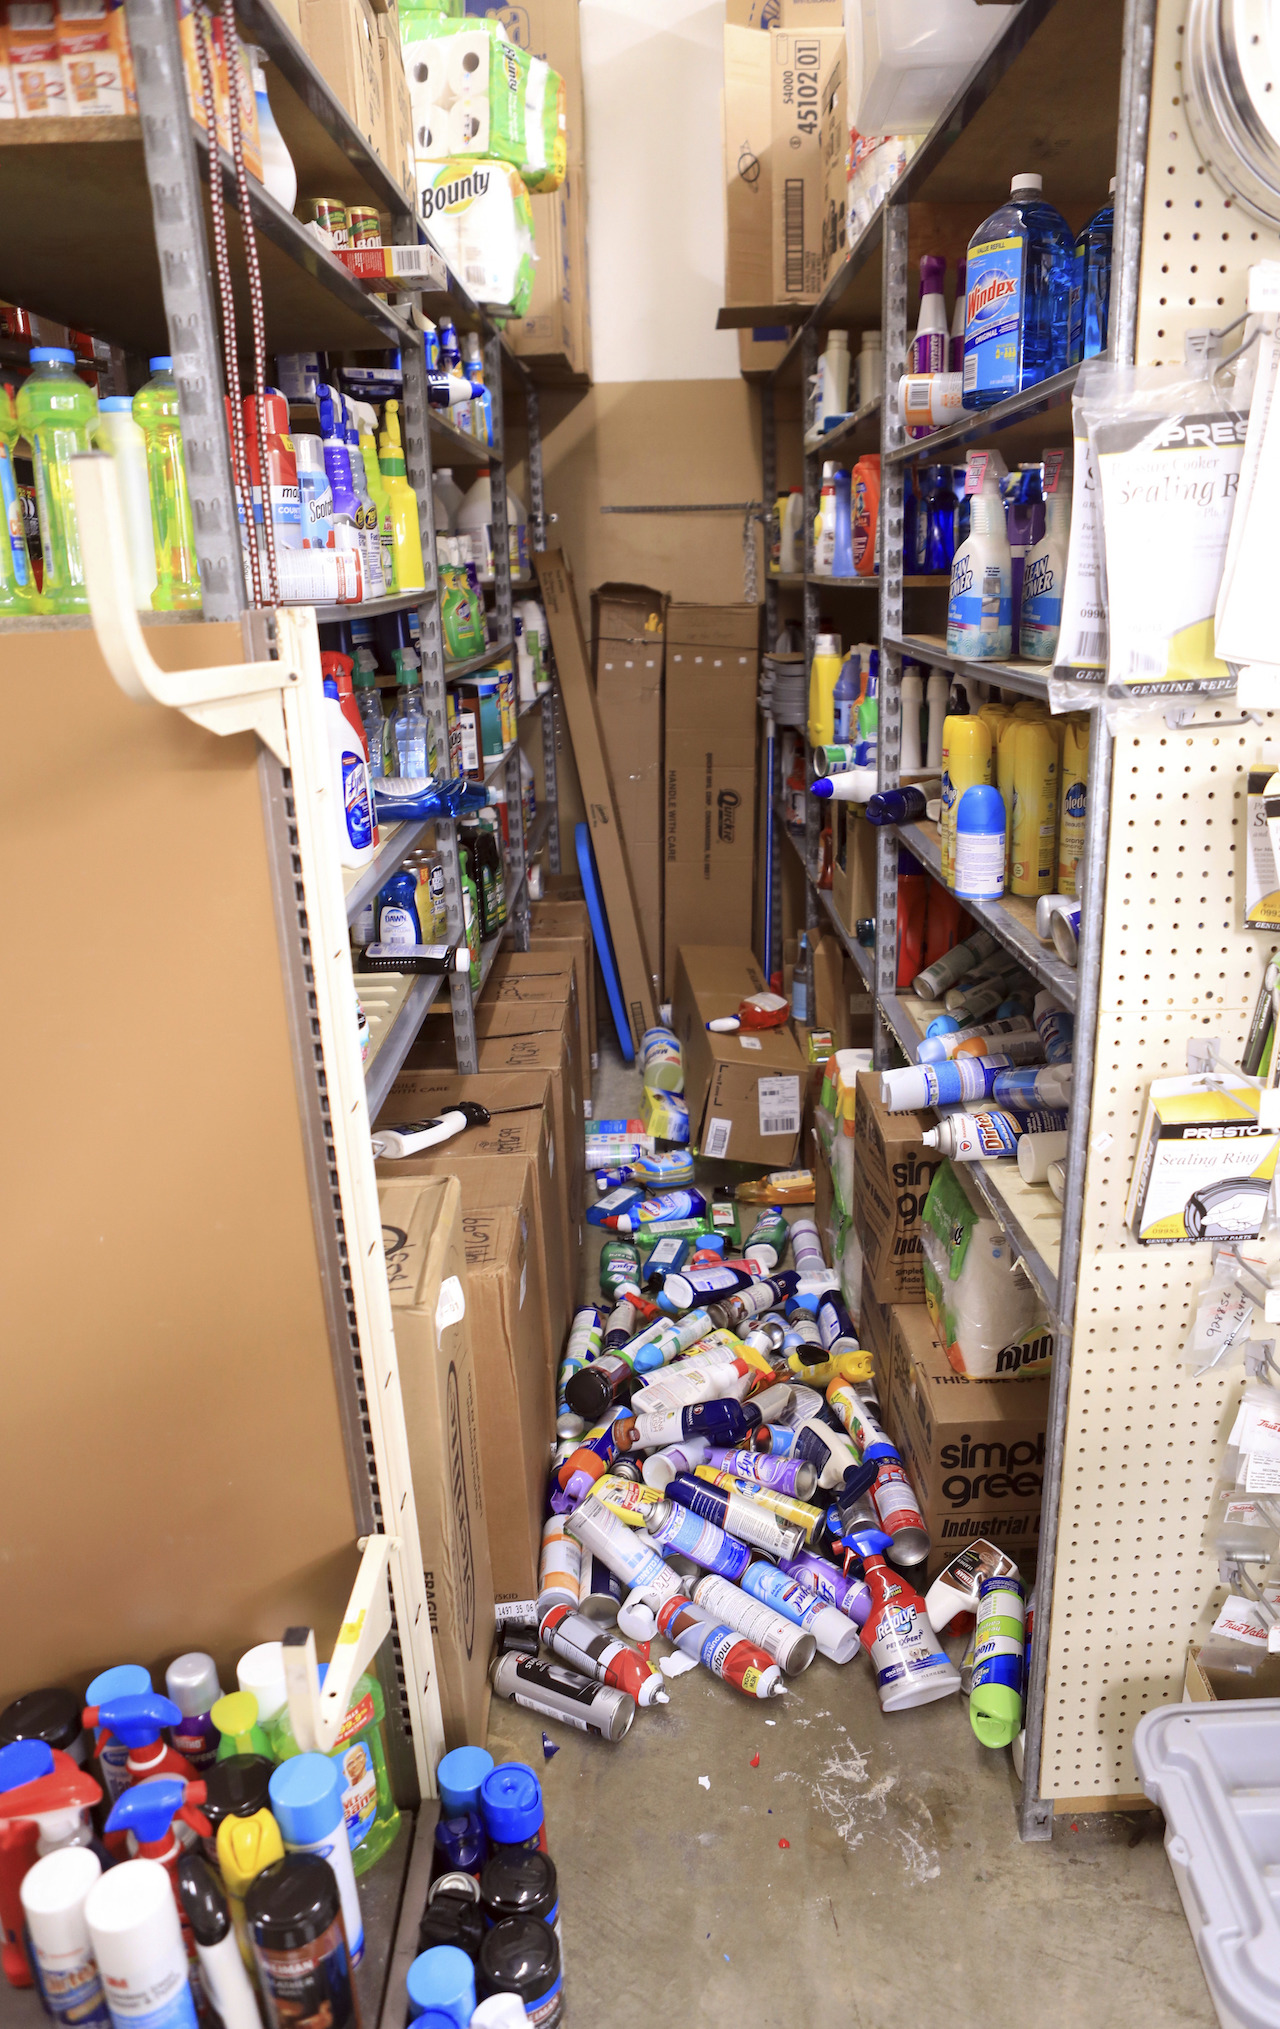 <div class='meta'><div class='origin-logo' data-origin='AP'></div><span class='caption-text' data-credit='AP Photo/Dan Joling'>Cans of paint and other items litter the stockroom floor of Anchorage True Value Hardware after a morning earthquake on Friday, Nov. 30, 2018, in Anchorage, Alaska.</span></div>